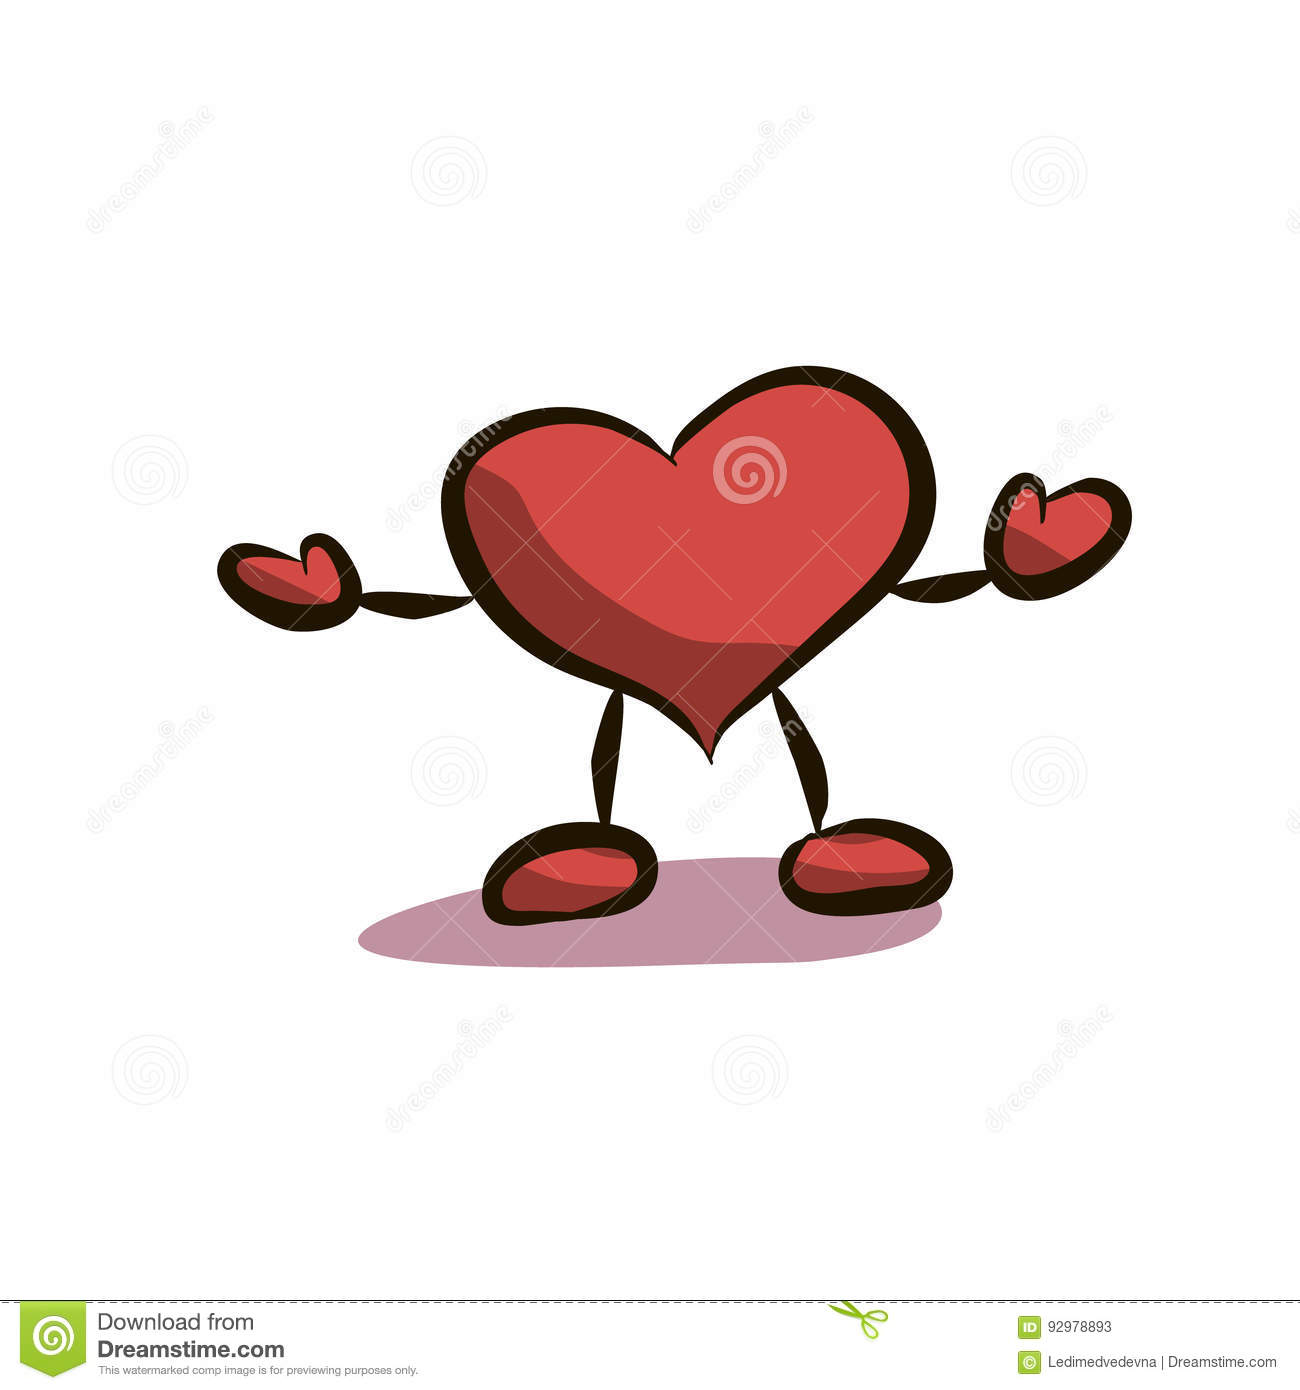 Heart with legs stock vector. Illustration of drawn, symbol.